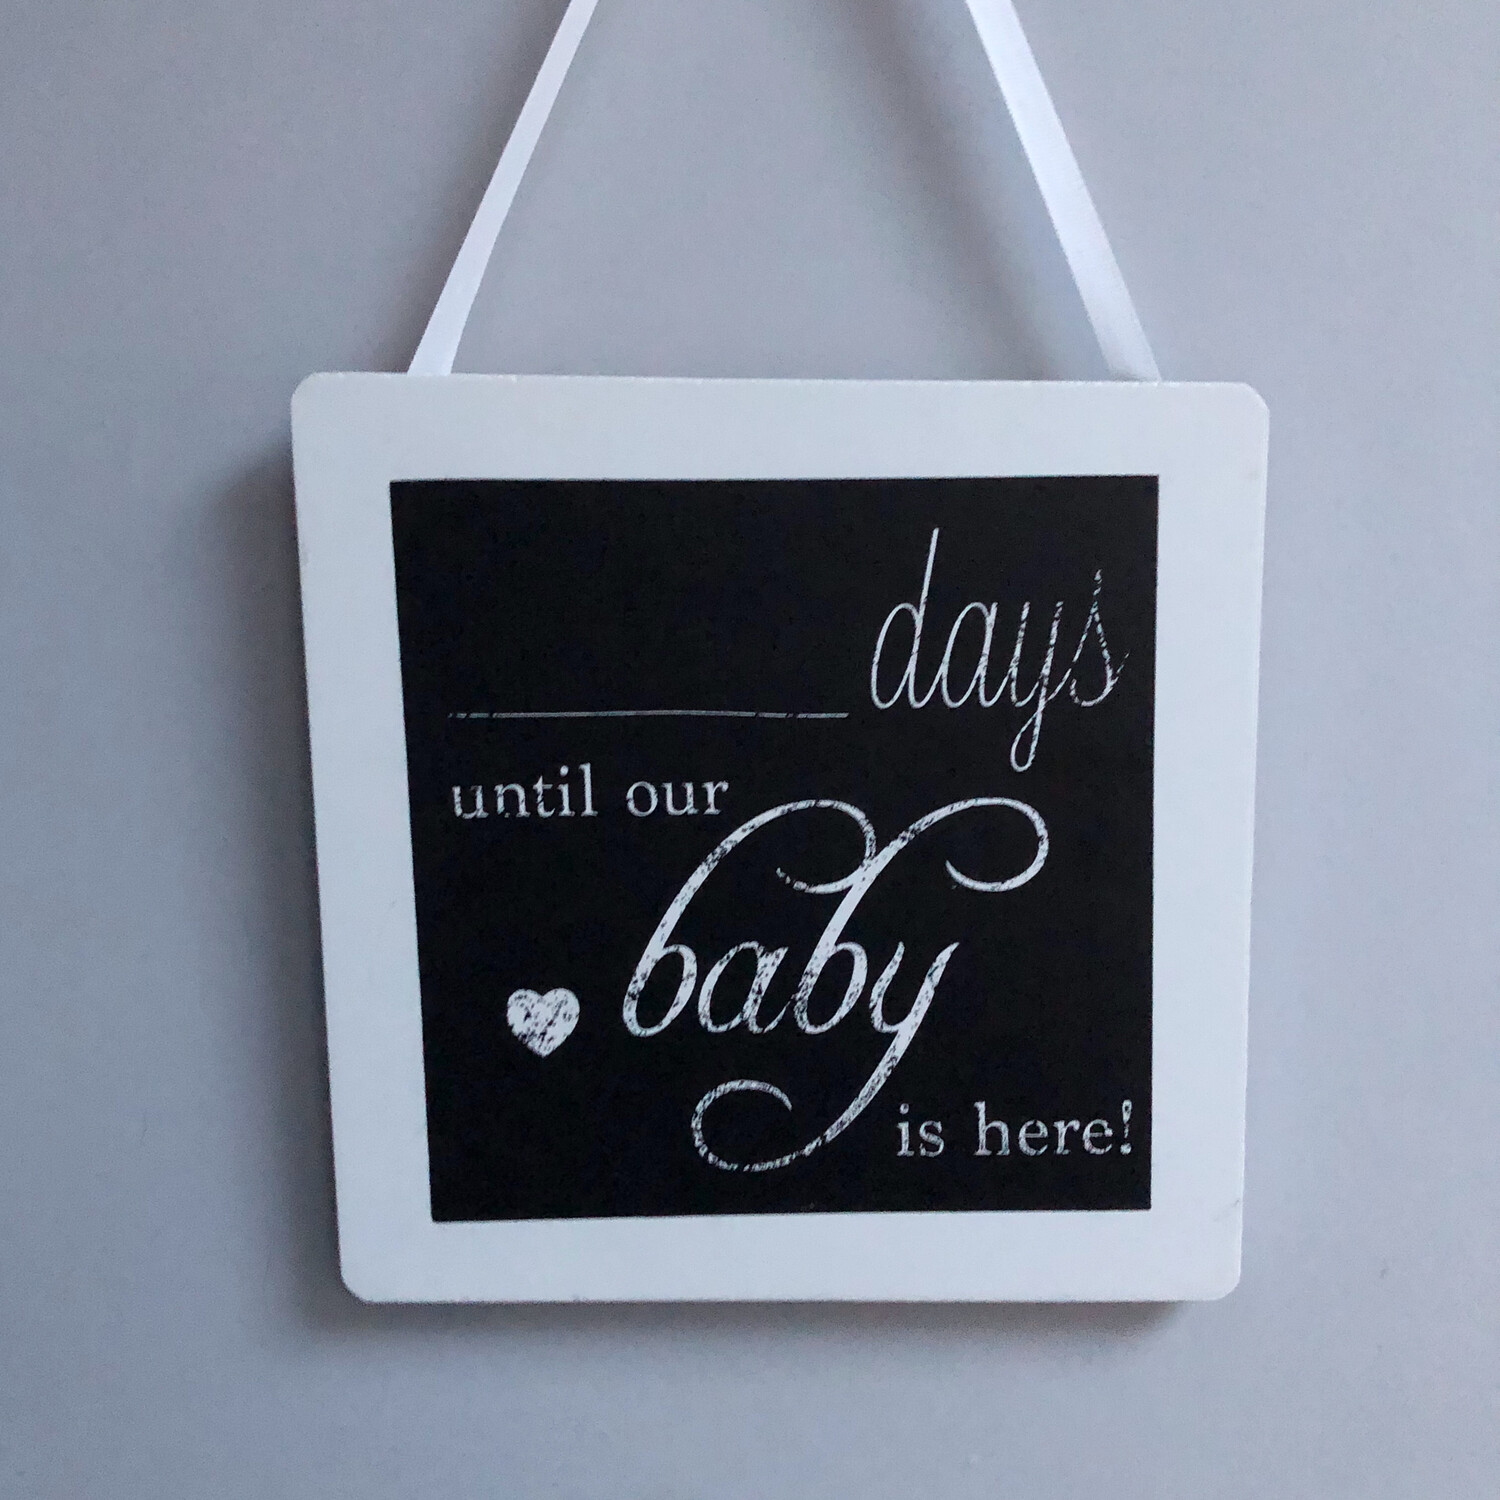 Days until our Baby is here countdown